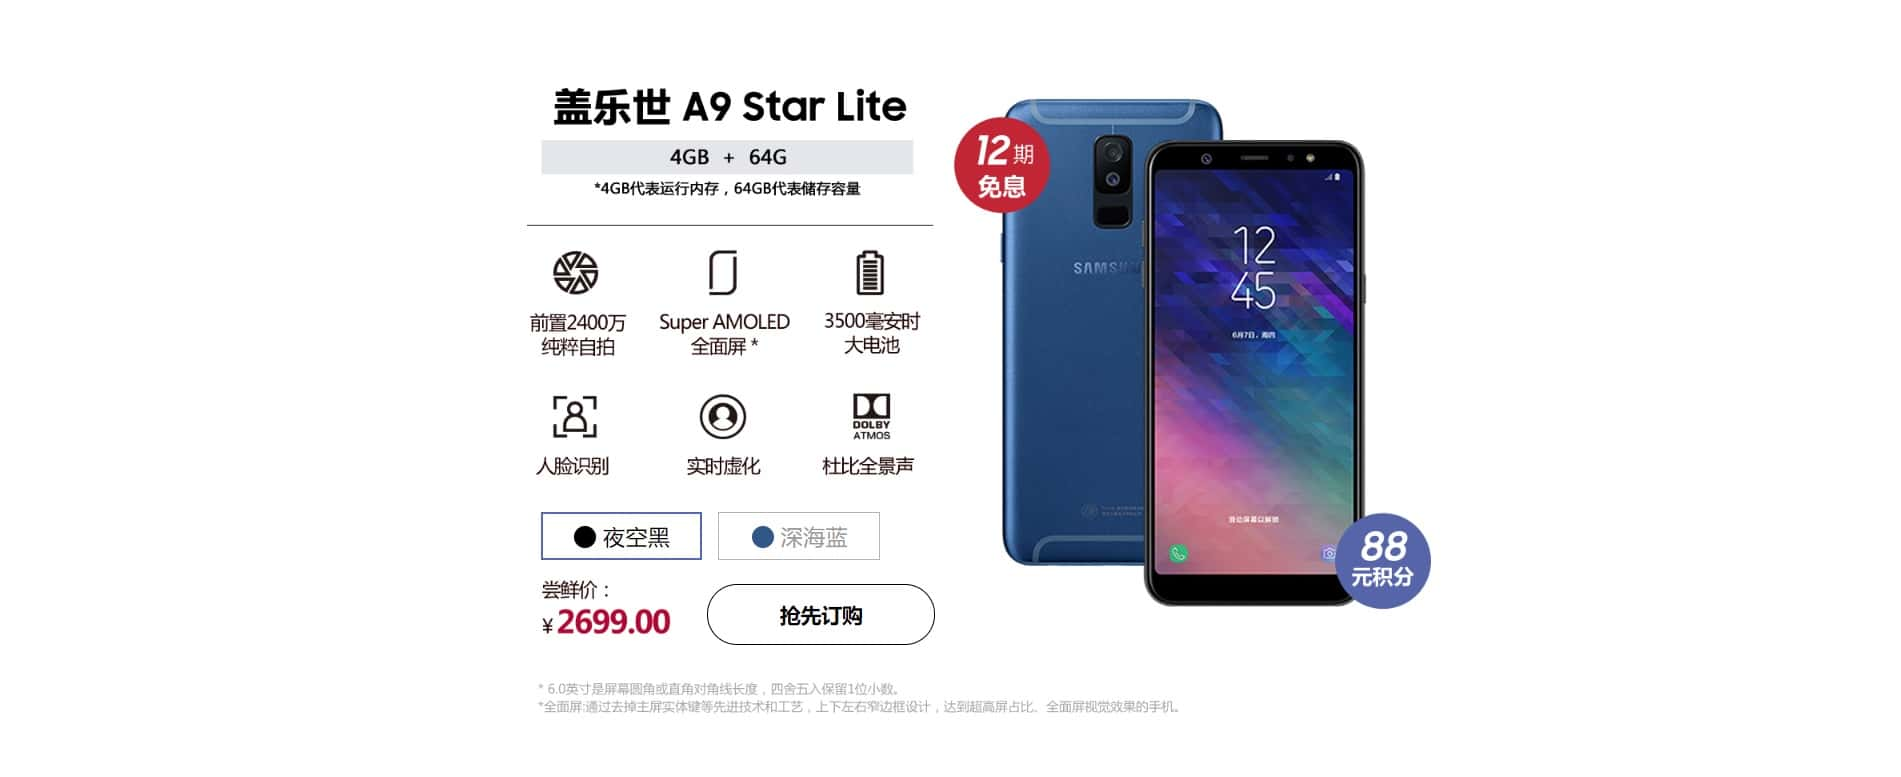 Samsung's Galaxy A9 Star Appears In China, Dual Cameras and Larger Batteries 7